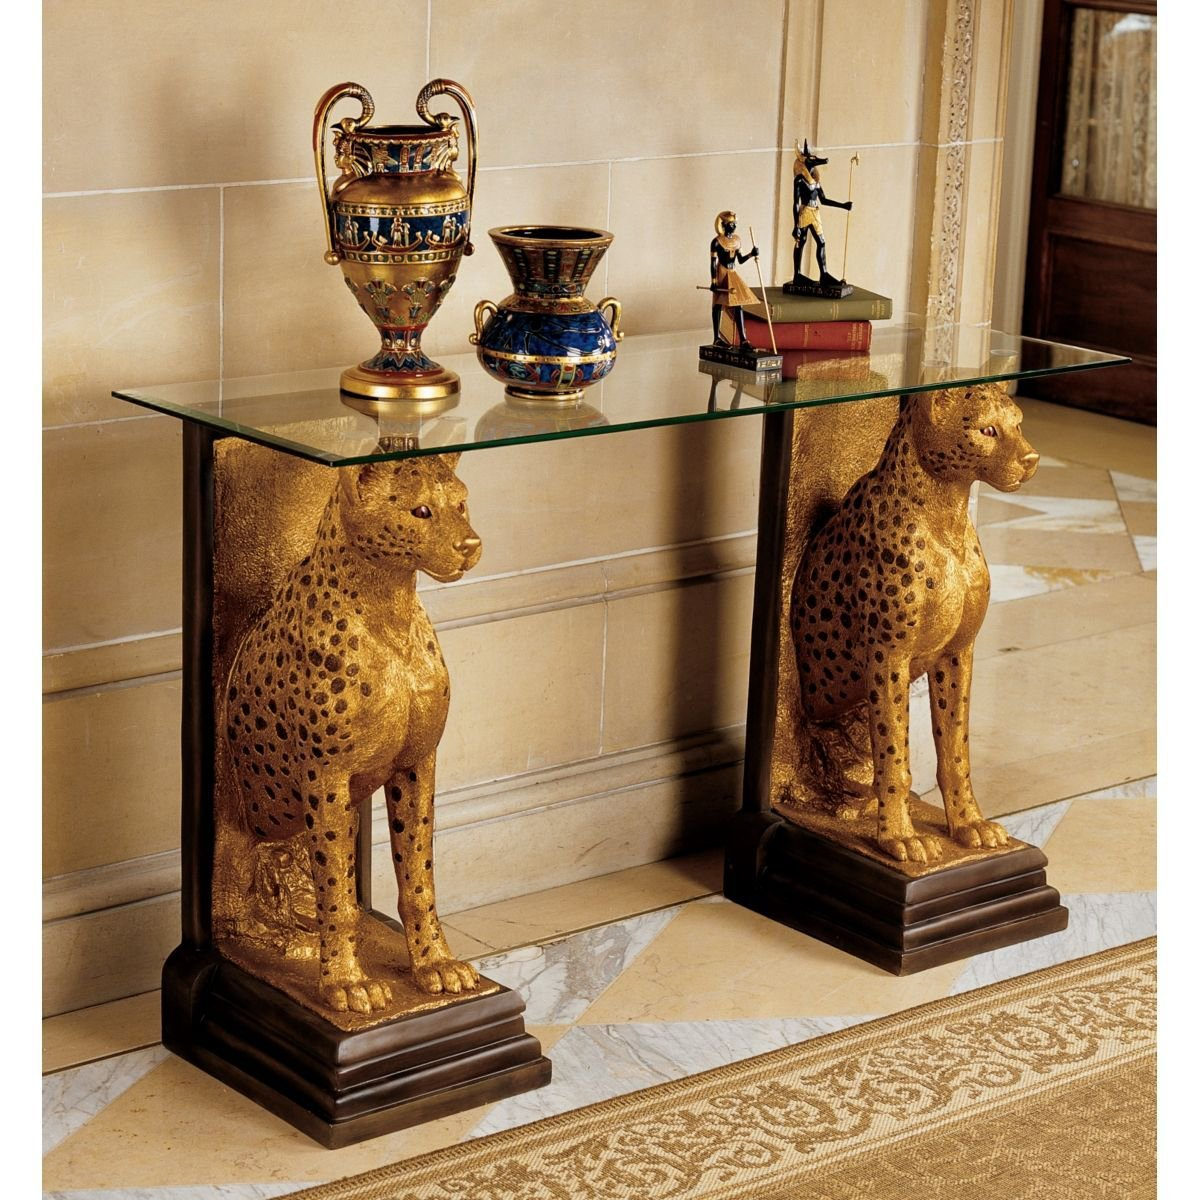 Ancient egyptian furniture - 81acauydcwl Aa1200 Jpgegyptian Wallpaper For House